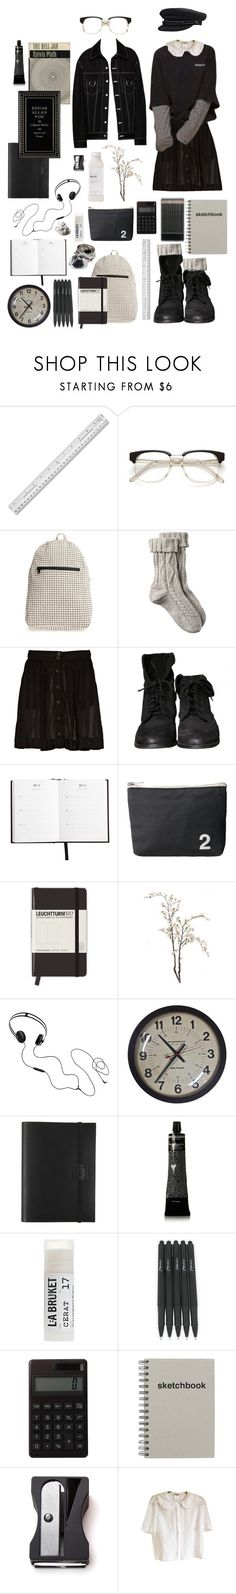 """""""Untitled #1351"""" by jayda-xx ❤ liked on Polyvore featuring BAGGU, Fat Face, rag & bone, Zara, Margaret Howell, Leuchtturm1917, AIAIAI, WALL, Undercover and Grown Alchemist"""